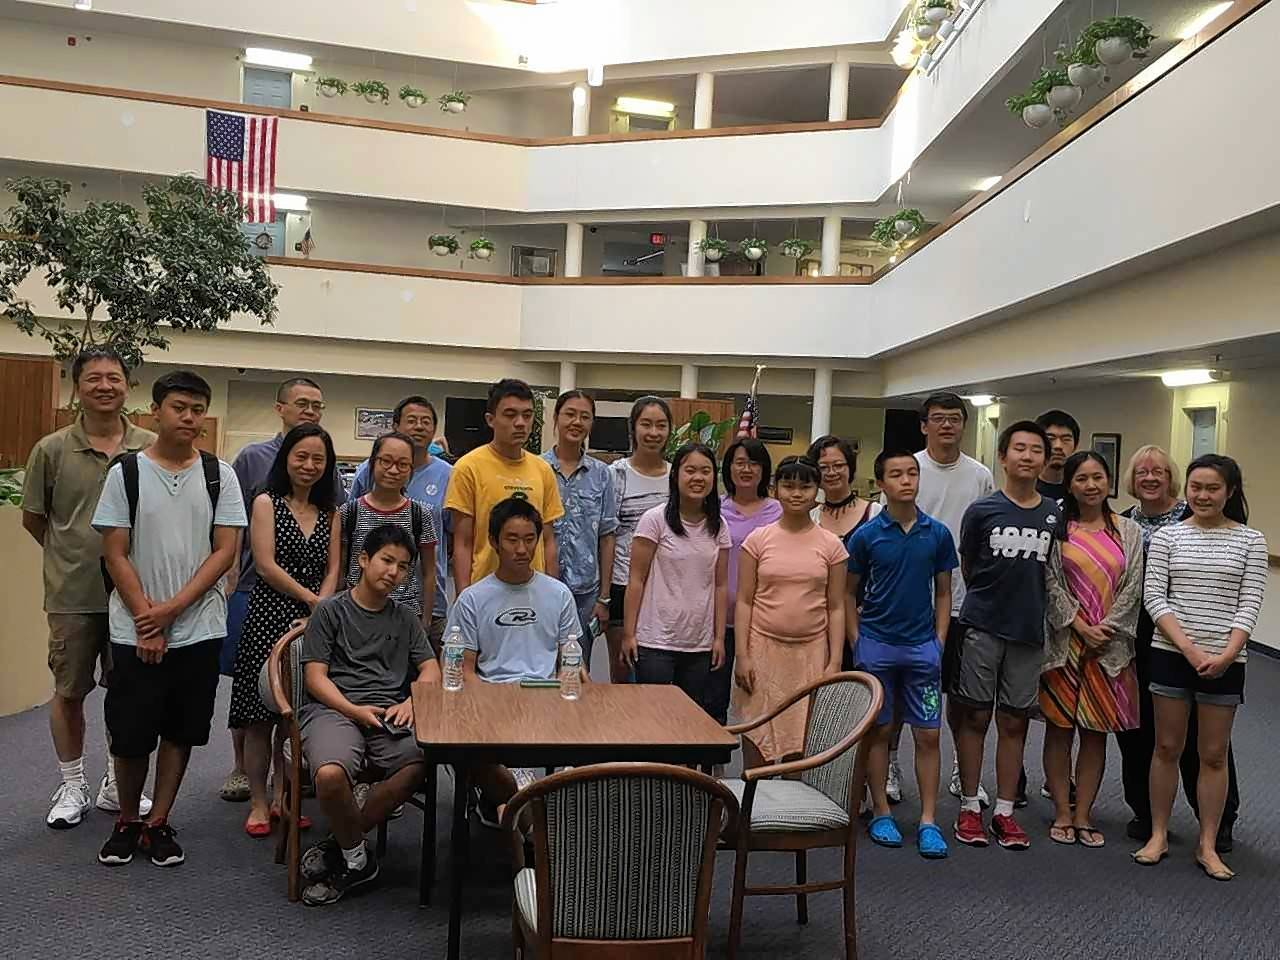 Every month or so, Team STEM For All, a group of more than 15 teens, meets up with senior residents of the Greencastle of Barrington apartments. Their goal? To help empower the seniors to use technology.